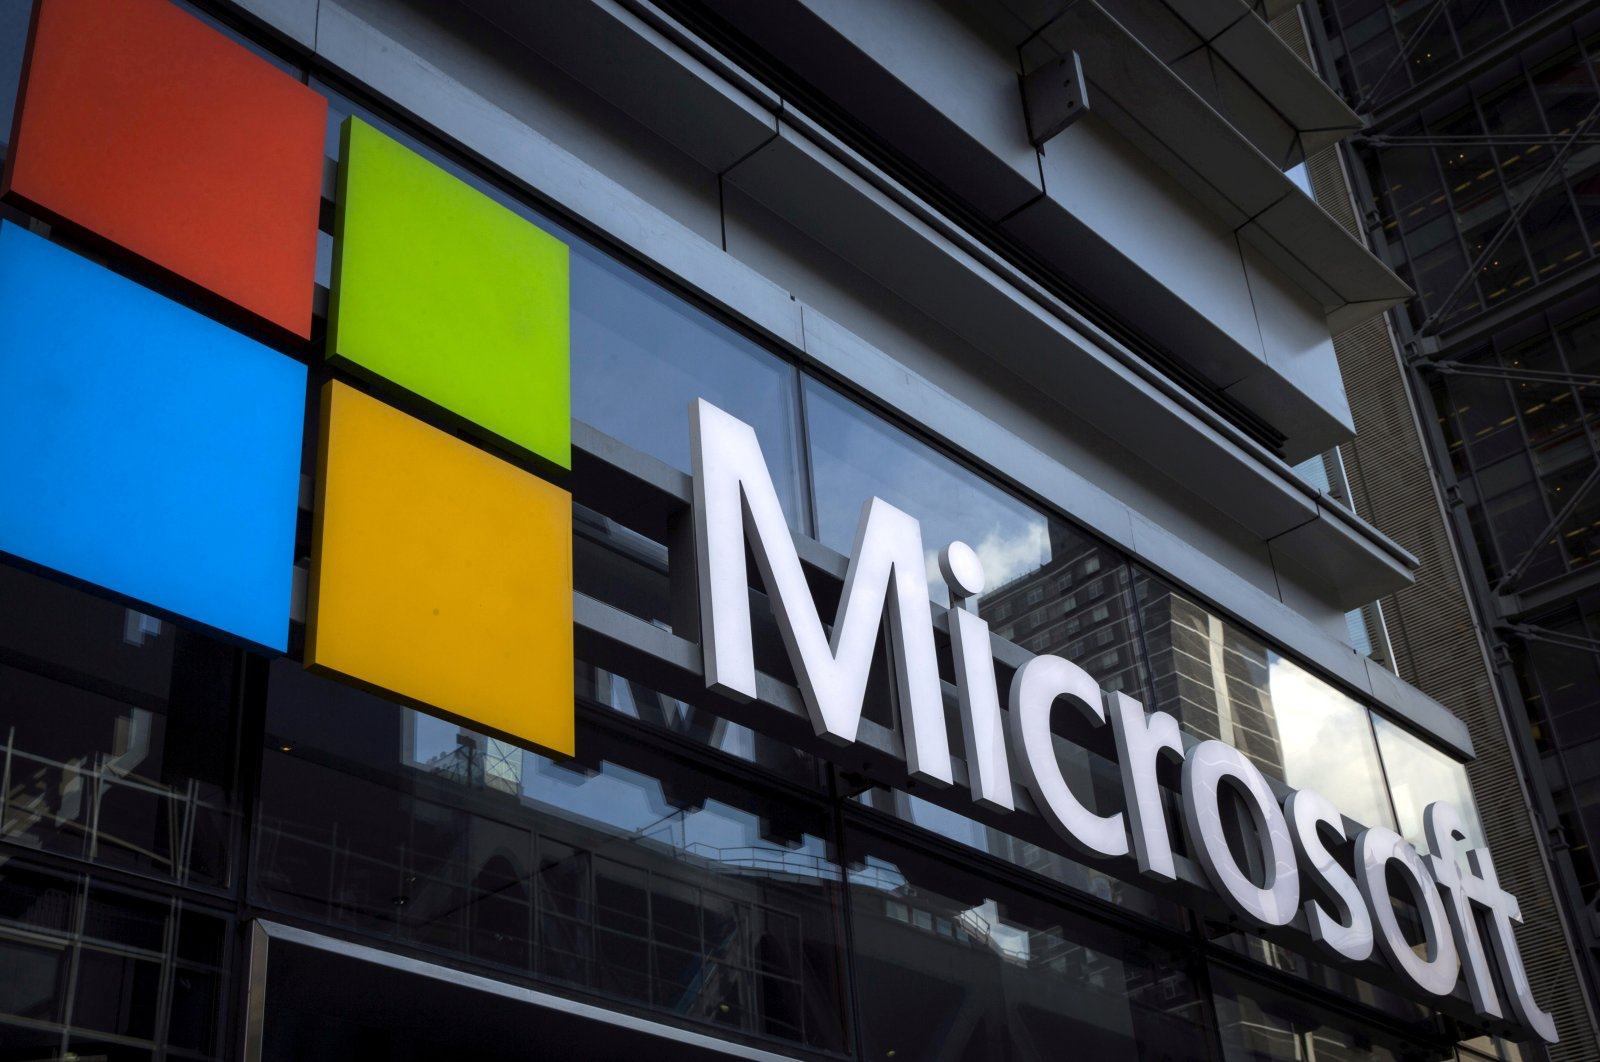 A Microsoft logo is seen on an office building in New York City, U.S., July 28, 2015. (Reuters Photo)